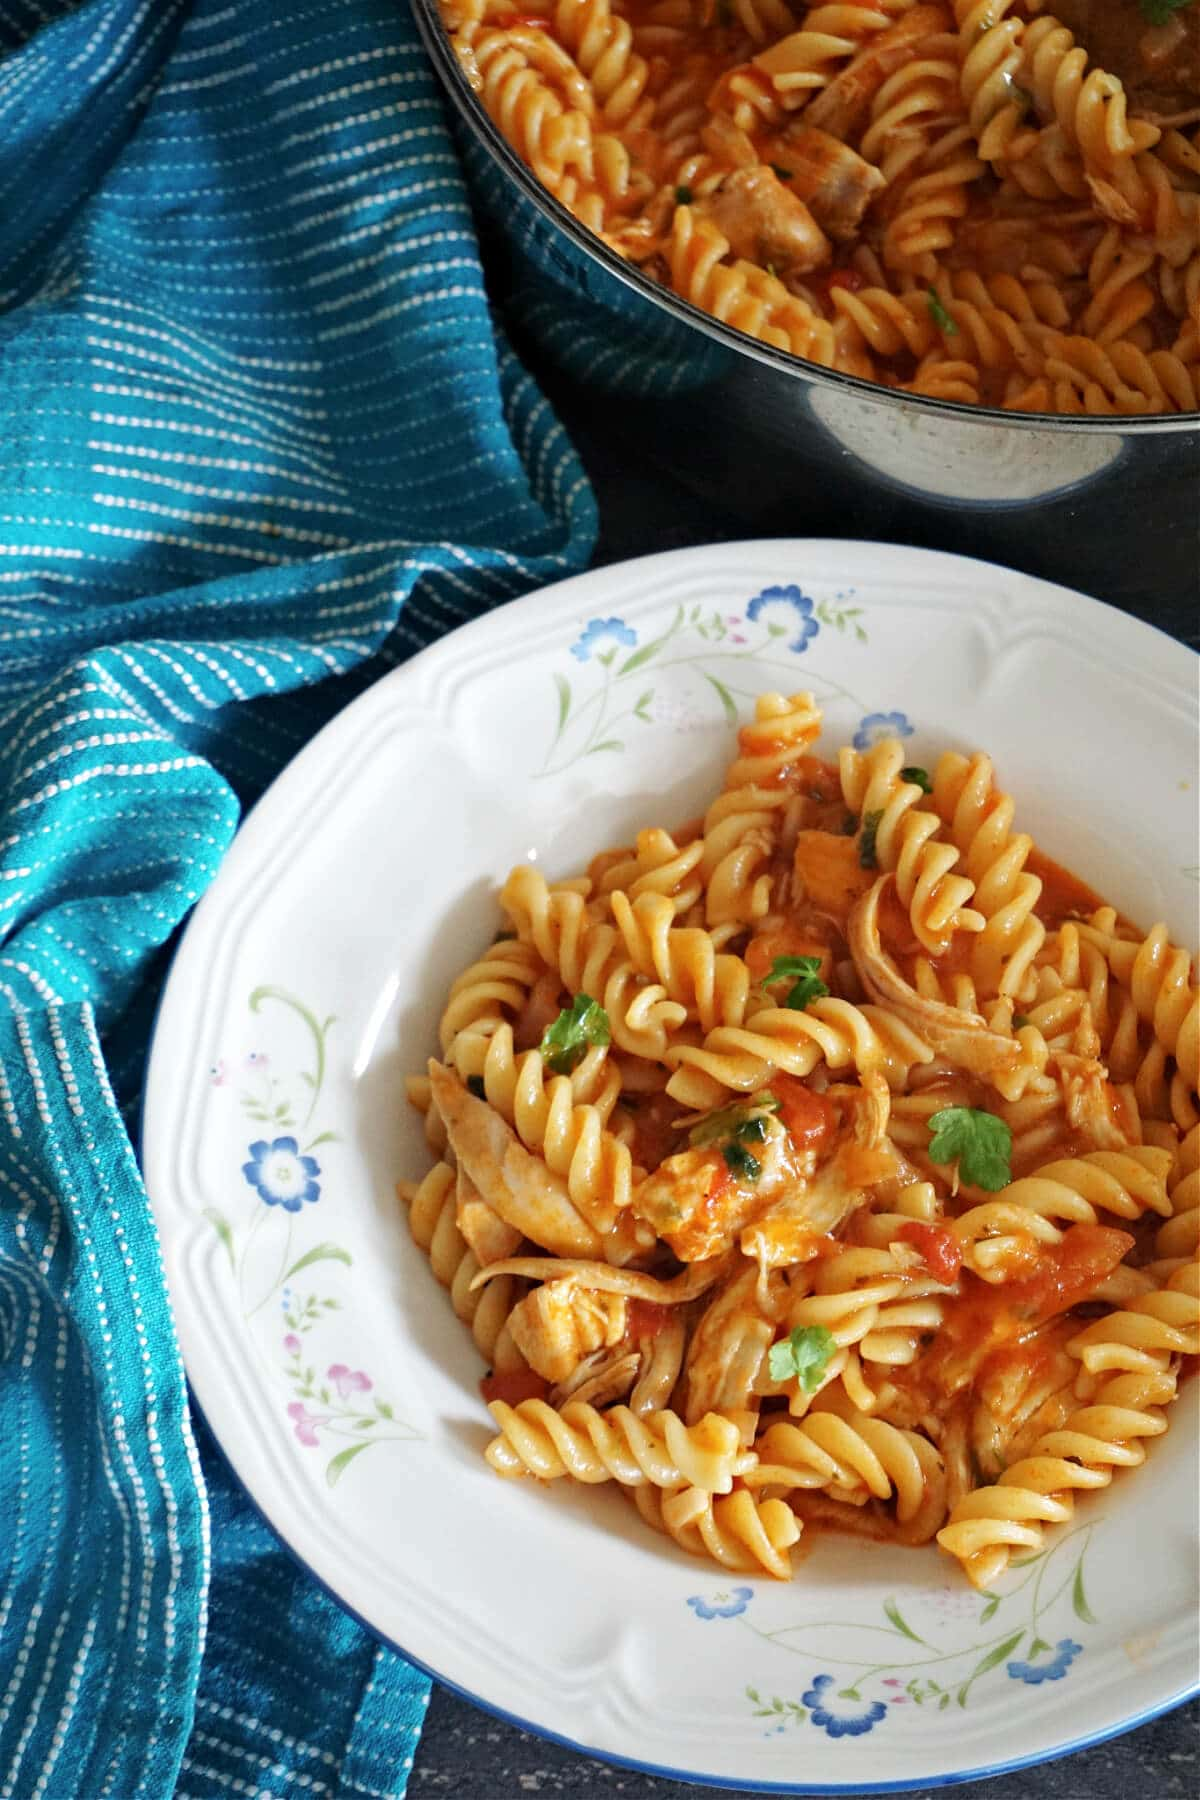 A white plate with pasta with chicken and tomato sauce